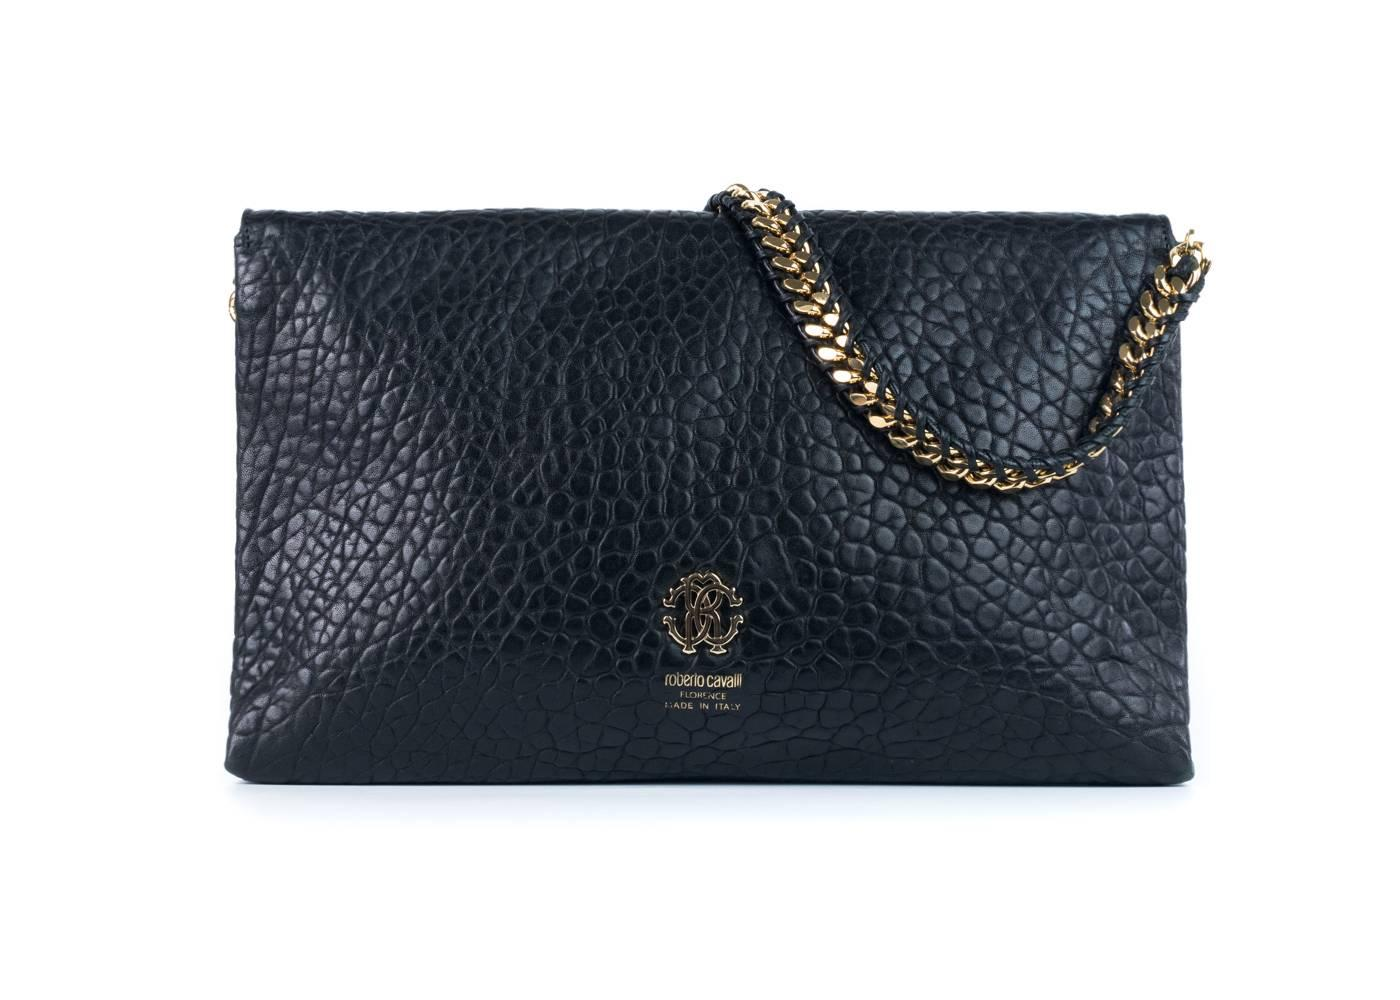 1stdibs Roberto Cavalli Black Calf Hair Studded Leather Tassel Clutch 2nuEss8Qi